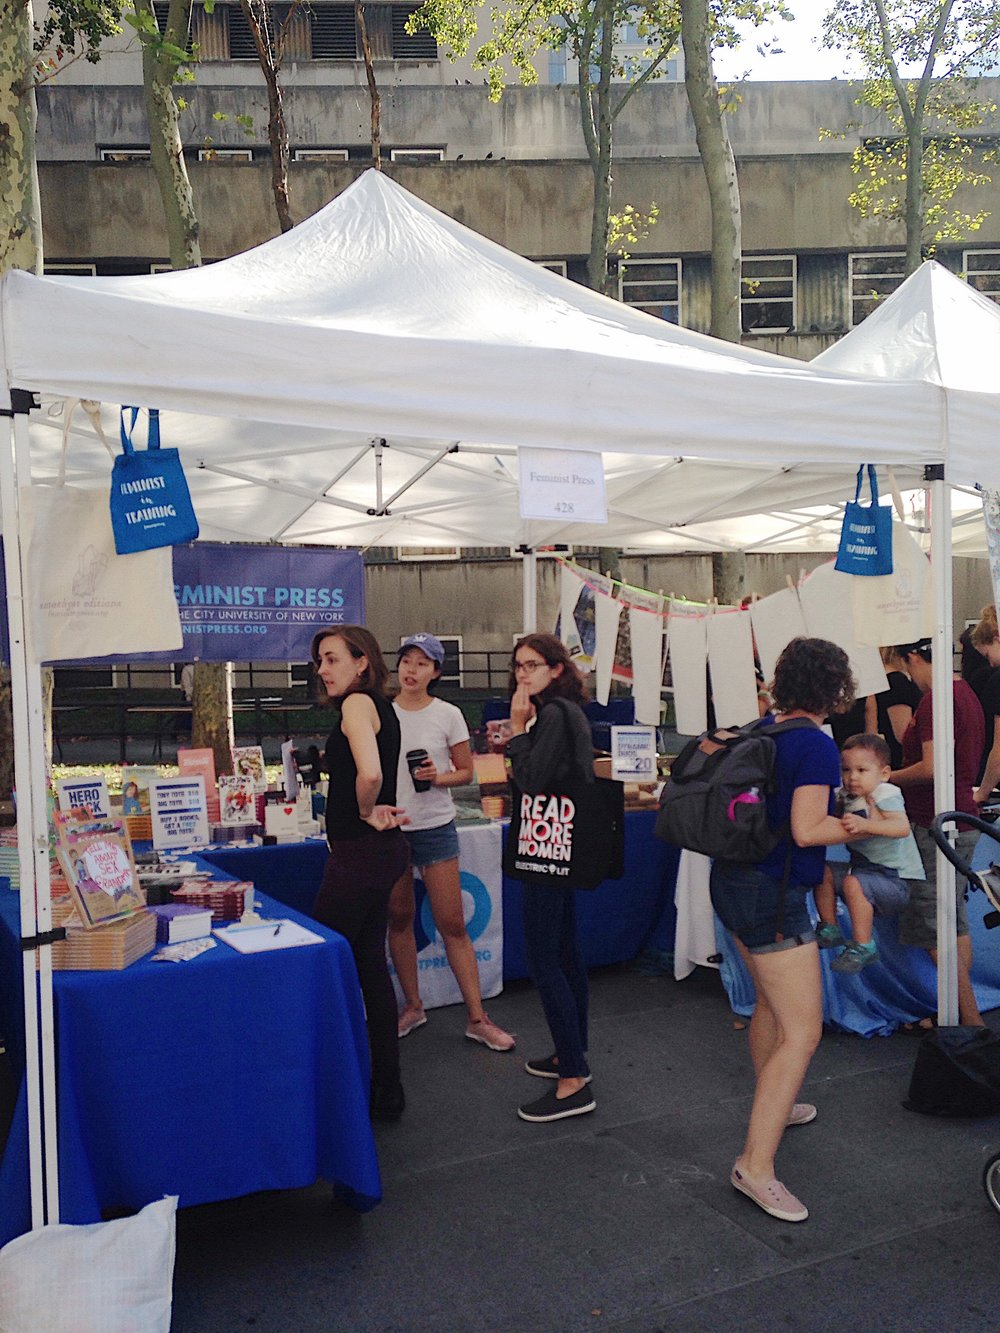 The Feminist Press booth